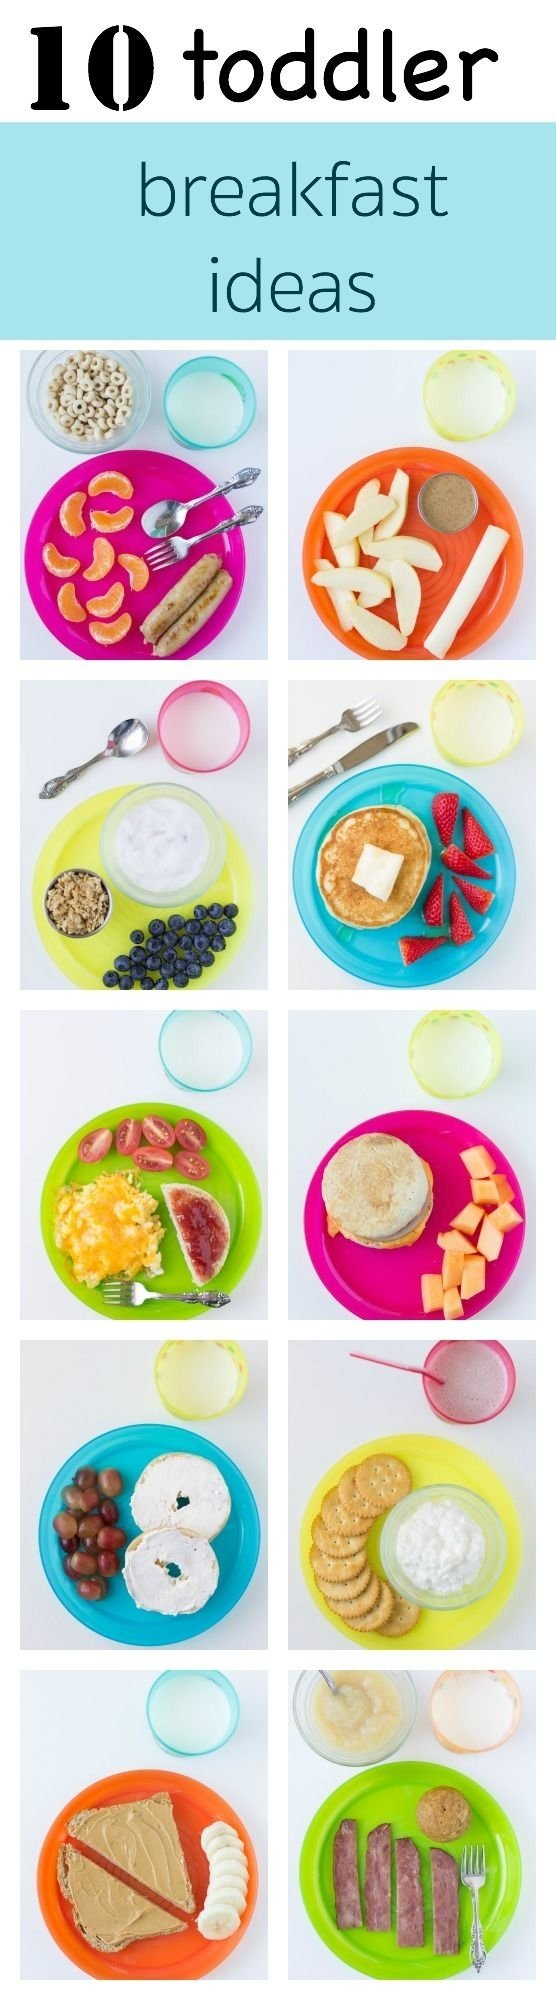 10 Most Recommended Healthy Breakfast Ideas For Toddlers 10 toddler breakfast ideas culinary hill food e licious 2020